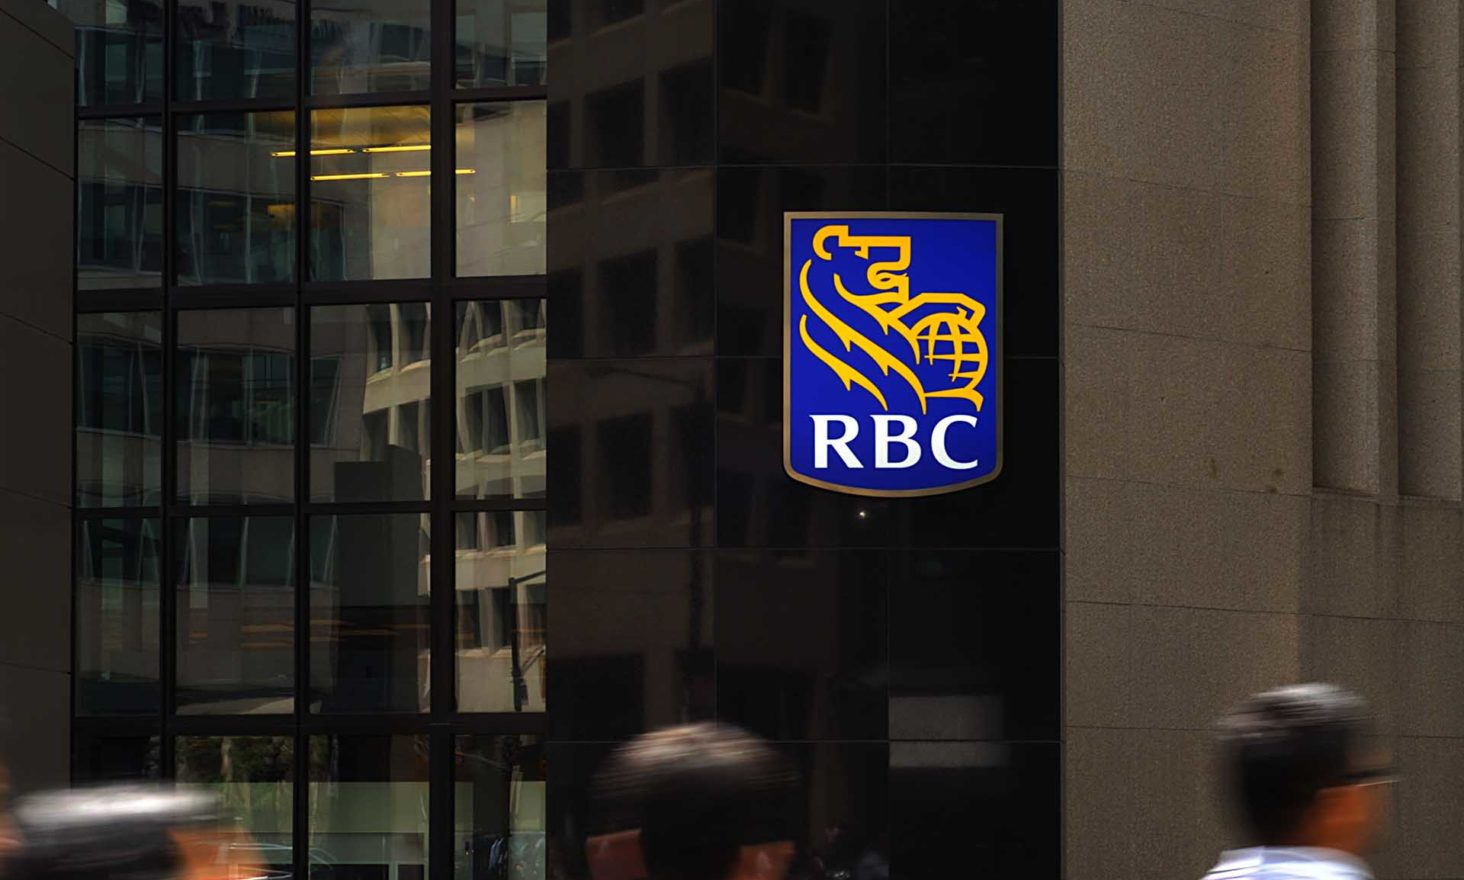 RBC Analyst: Blockchain Set To Be A $10 Trillion Industry Within 10-15 Years